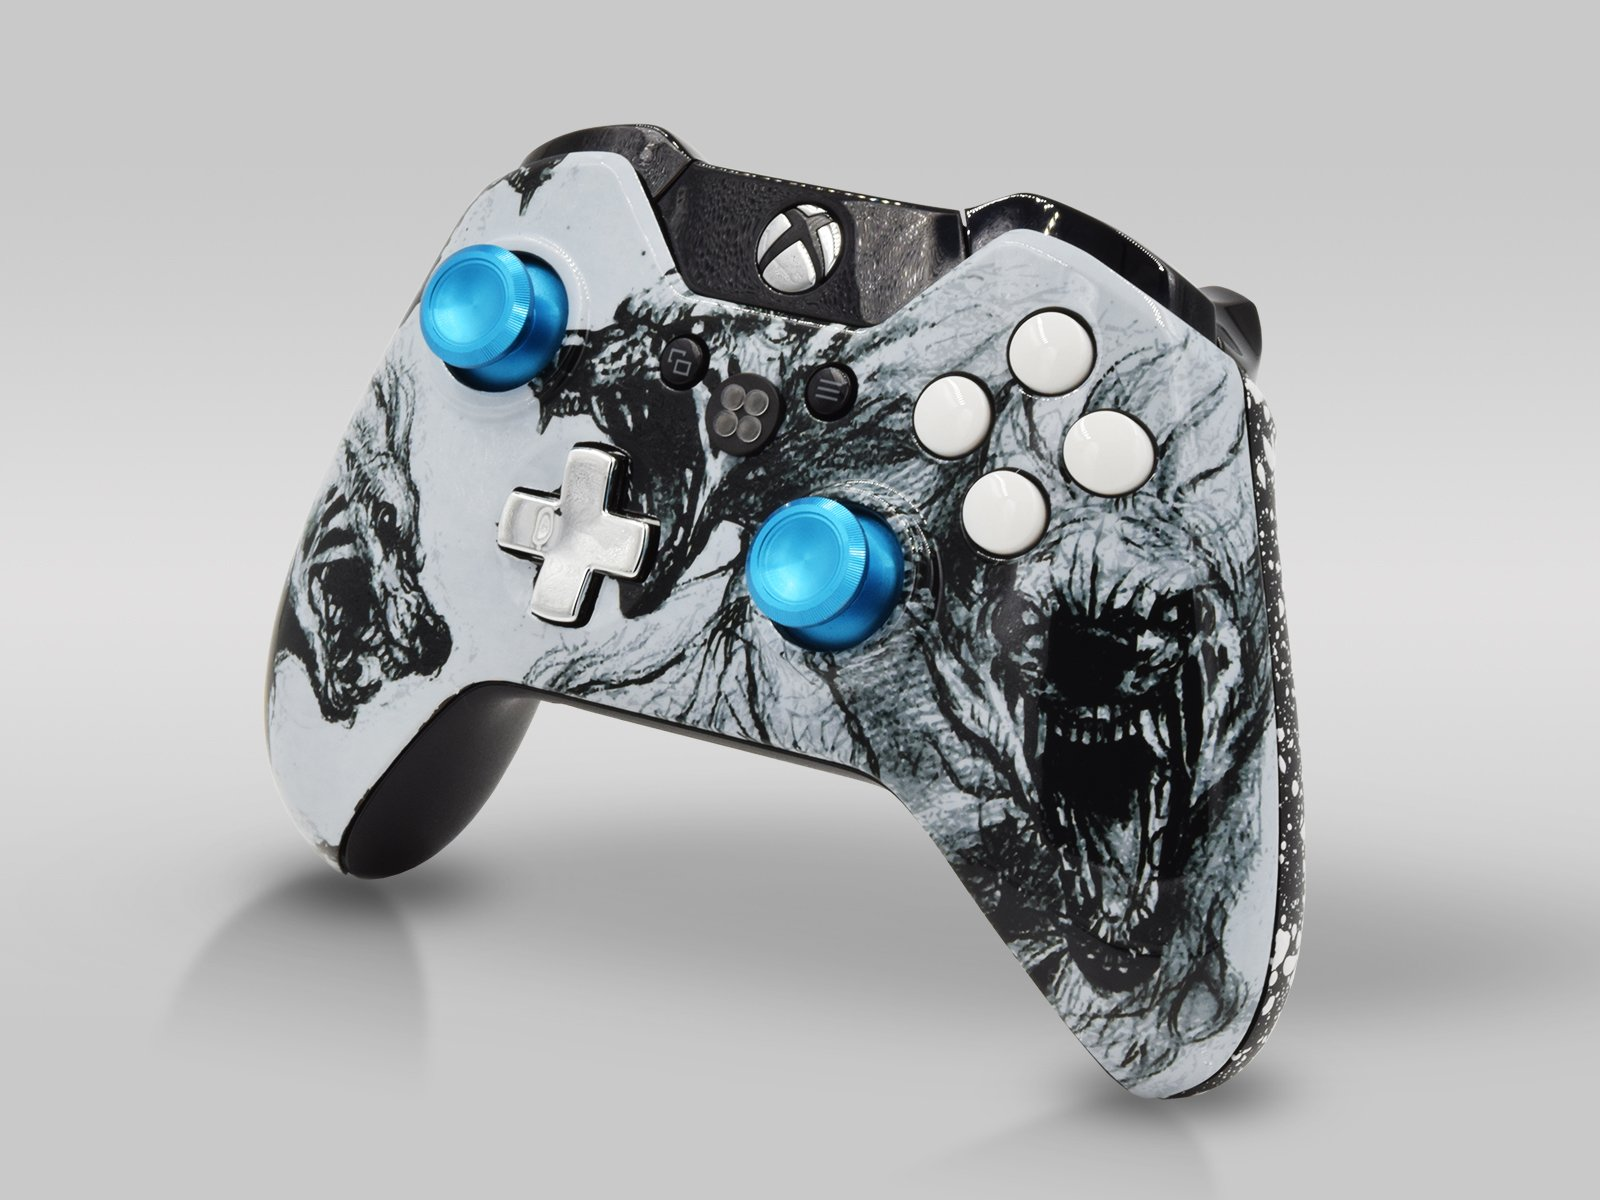 Best Xbox One Modded Controller